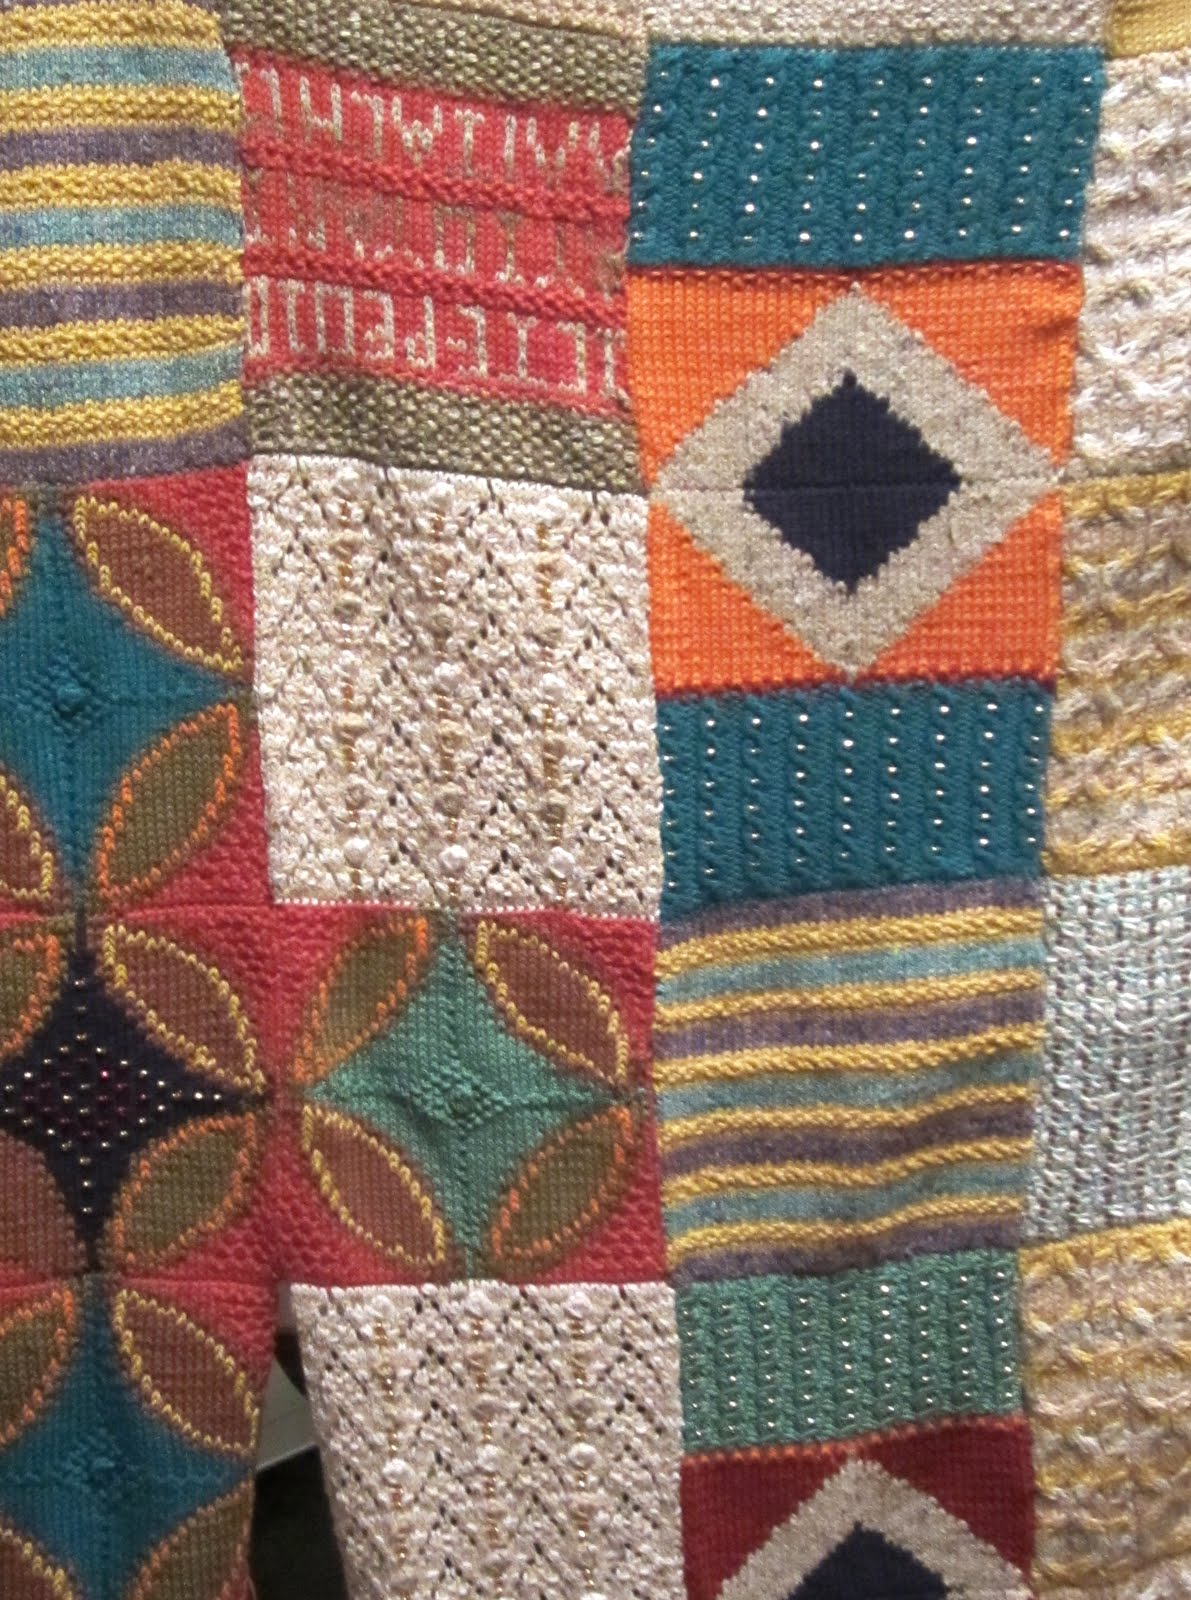 Knitting Patchwork Quilt Patterns : Knitted patchwork quilt images